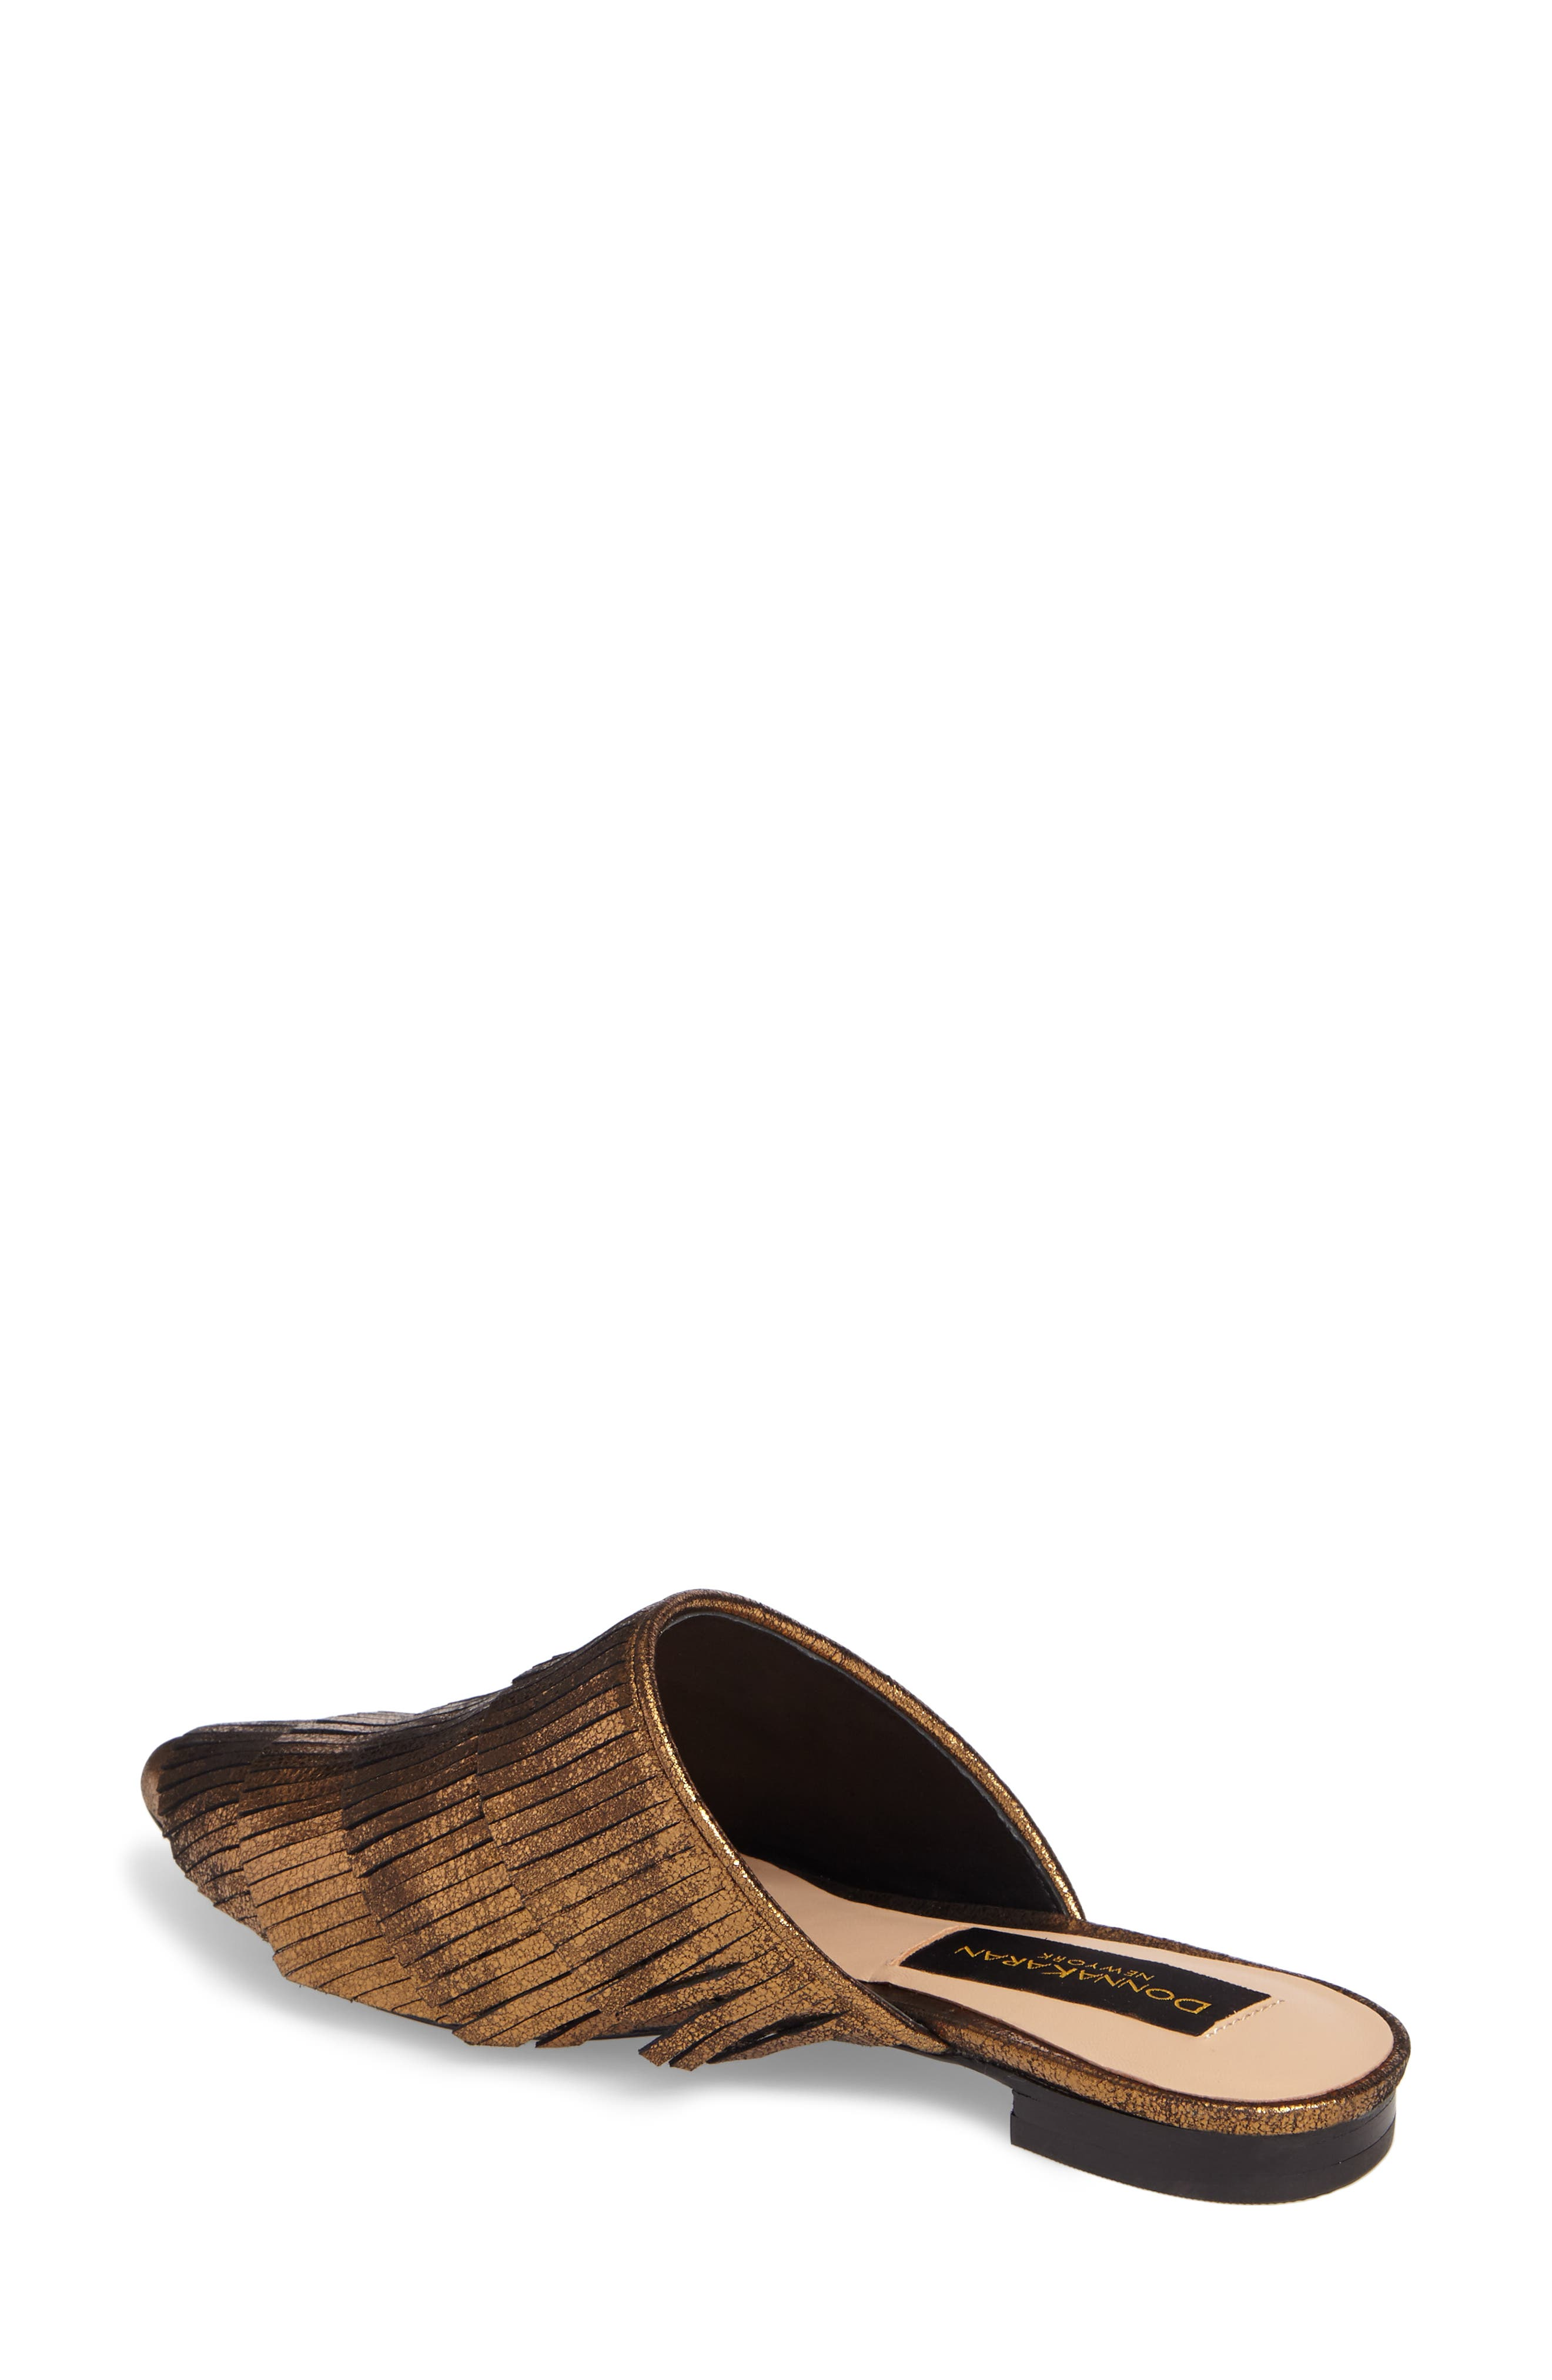 Donna Karan Paisley Fringe Mule,                             Alternate thumbnail 2, color,                             Brass Leather